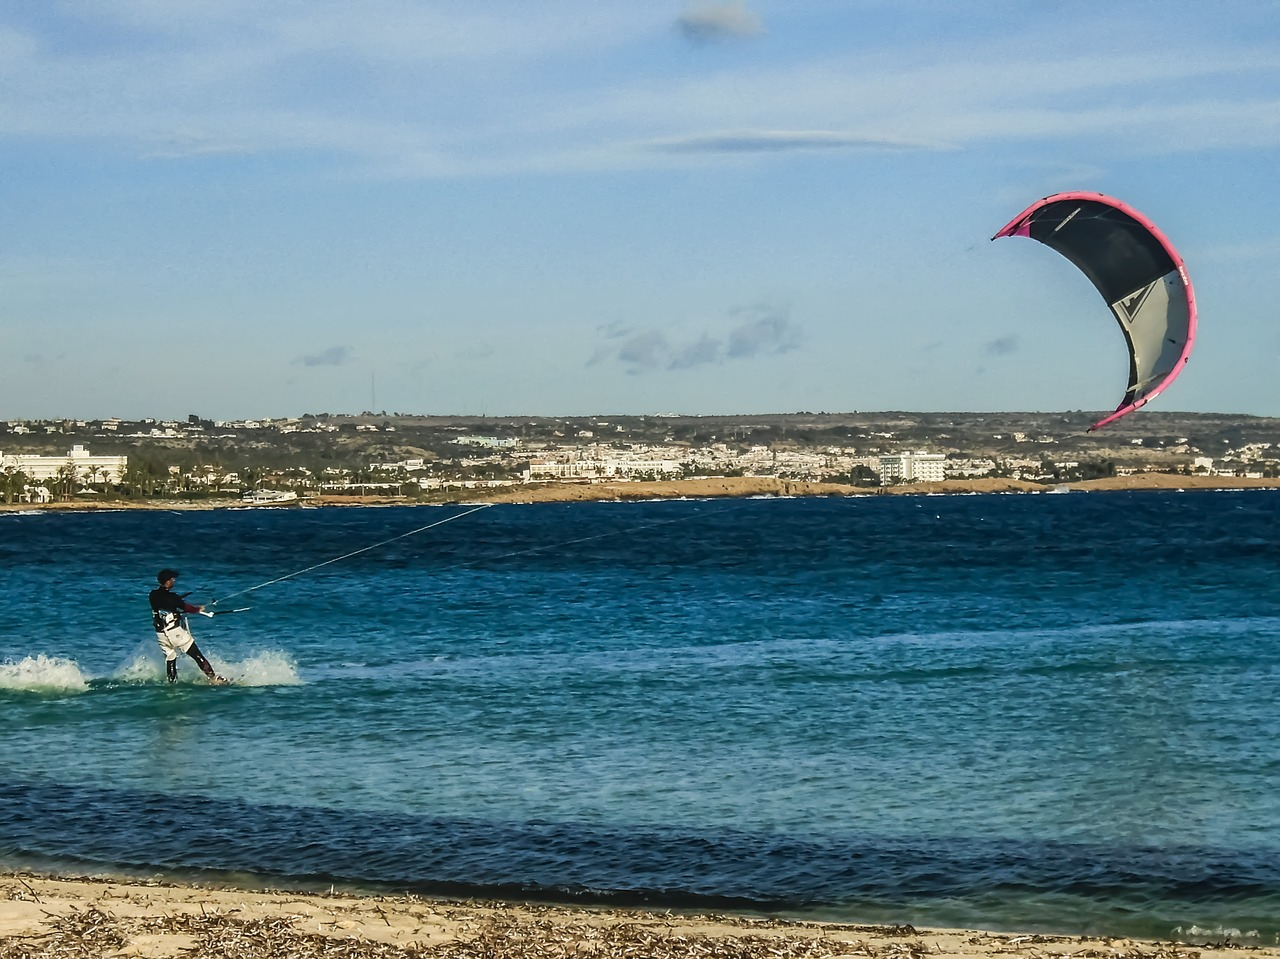 cyprus,ayia napa,kitesurfing,free pictures, free photos, free images, royalty free, free illustrations, public domain